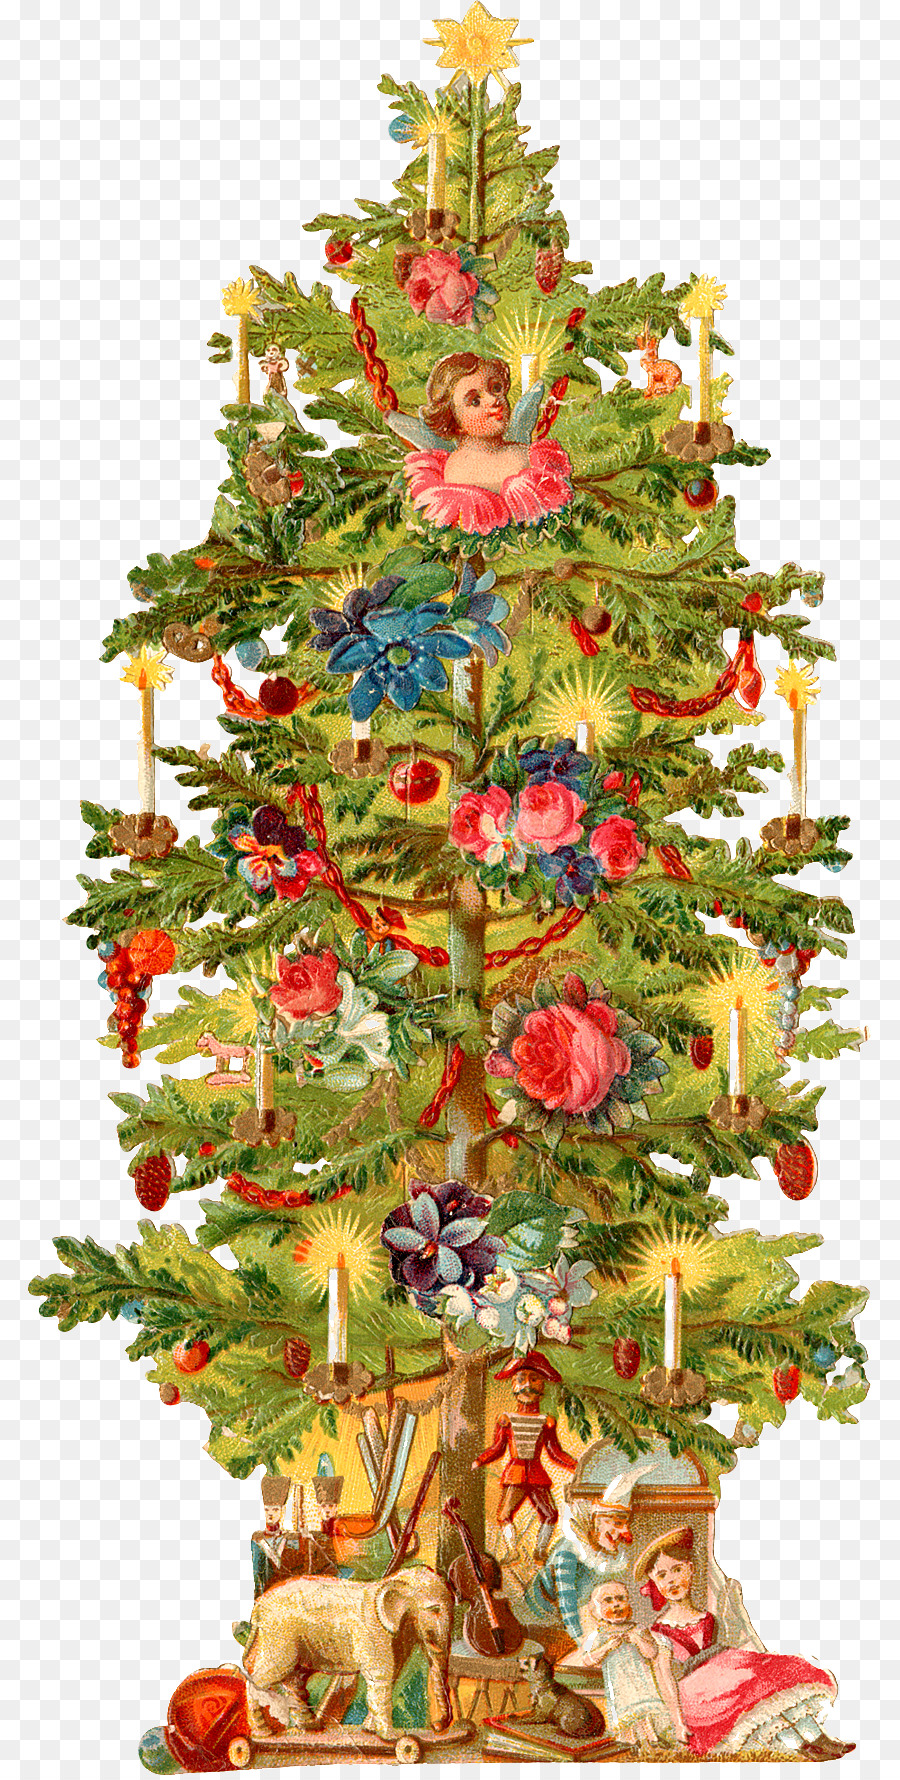 Tree Vintage Christmas Transparent Png Image Clipart Free Download